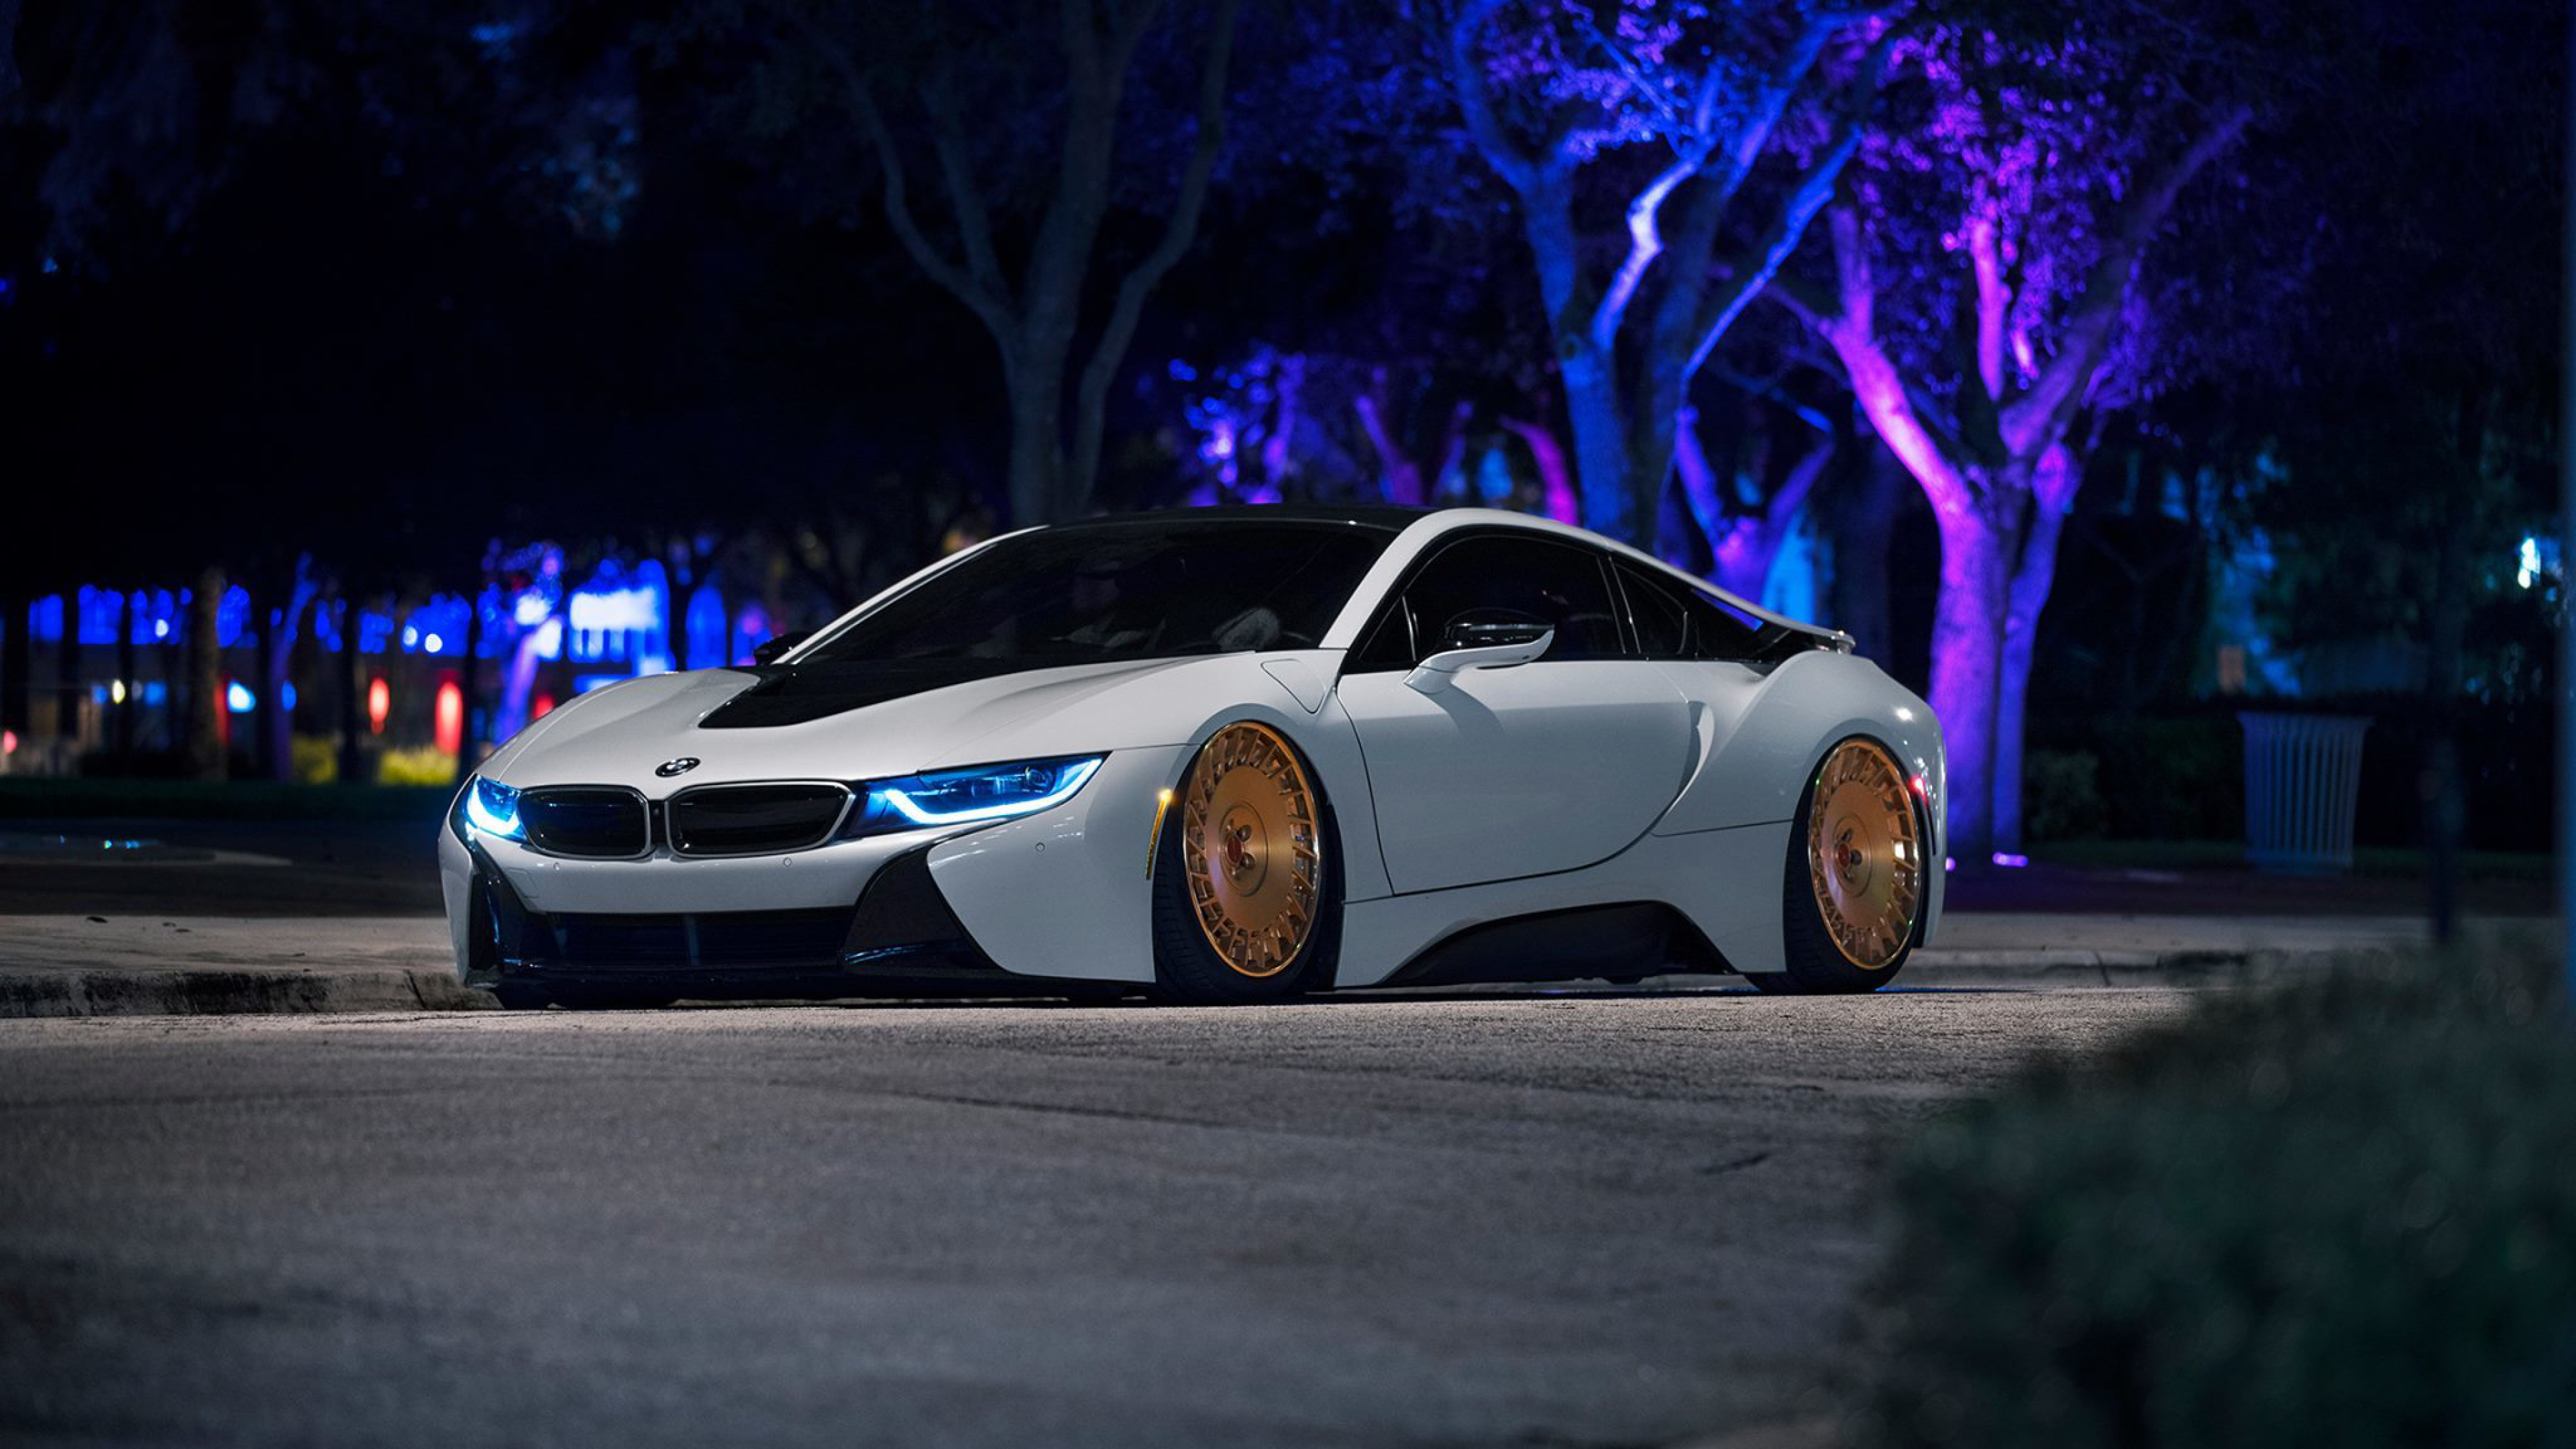 Bmw I8 2016 Hd Cars 4k Wallpapers Images Backgrounds Photos And